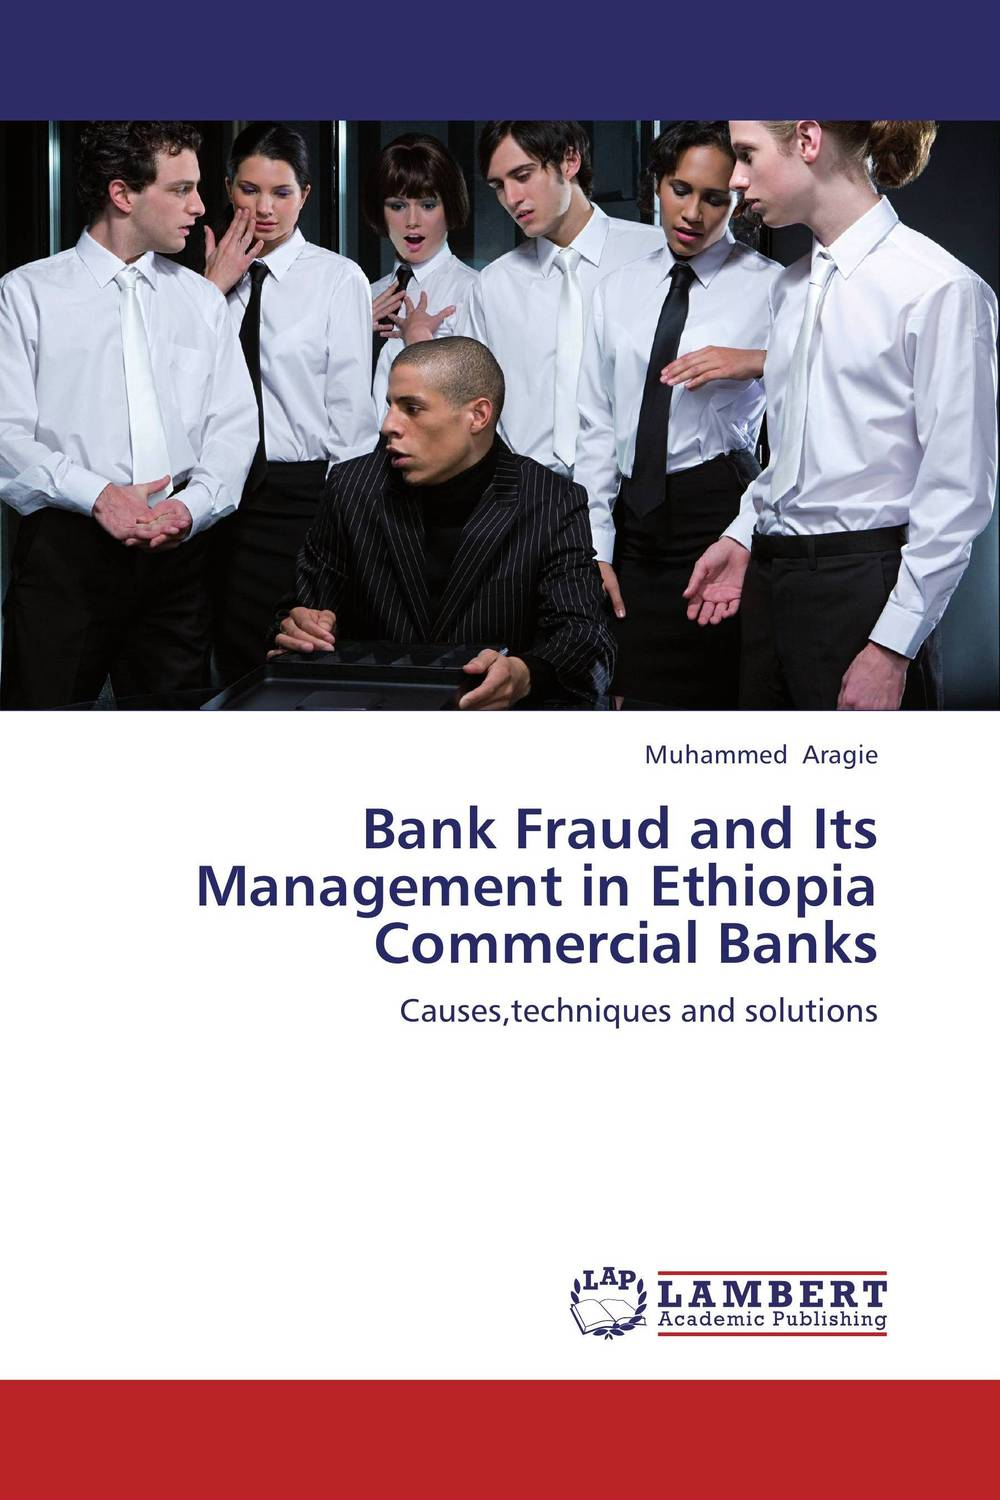 Bank Fraud and Its Management in Ethiopia Commercial Banks david montague a essentials of online payment security and fraud prevention